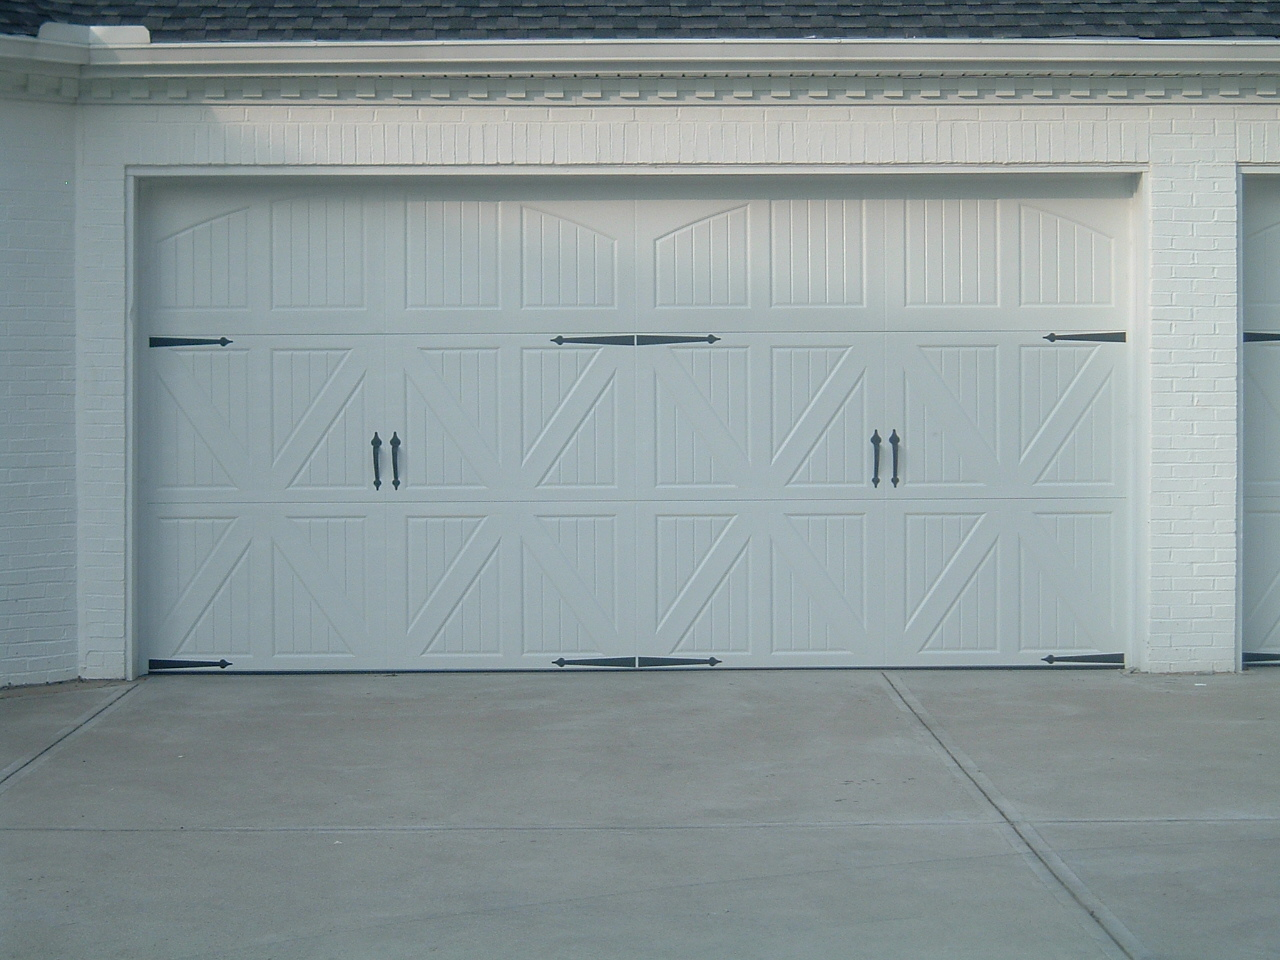 960 #303F47  PROJECT. THE COMPLETE PROJECT INCLUDED THREE DOORS TOTAL INCLUDING wallpaper Complete Garage Doors 36251280